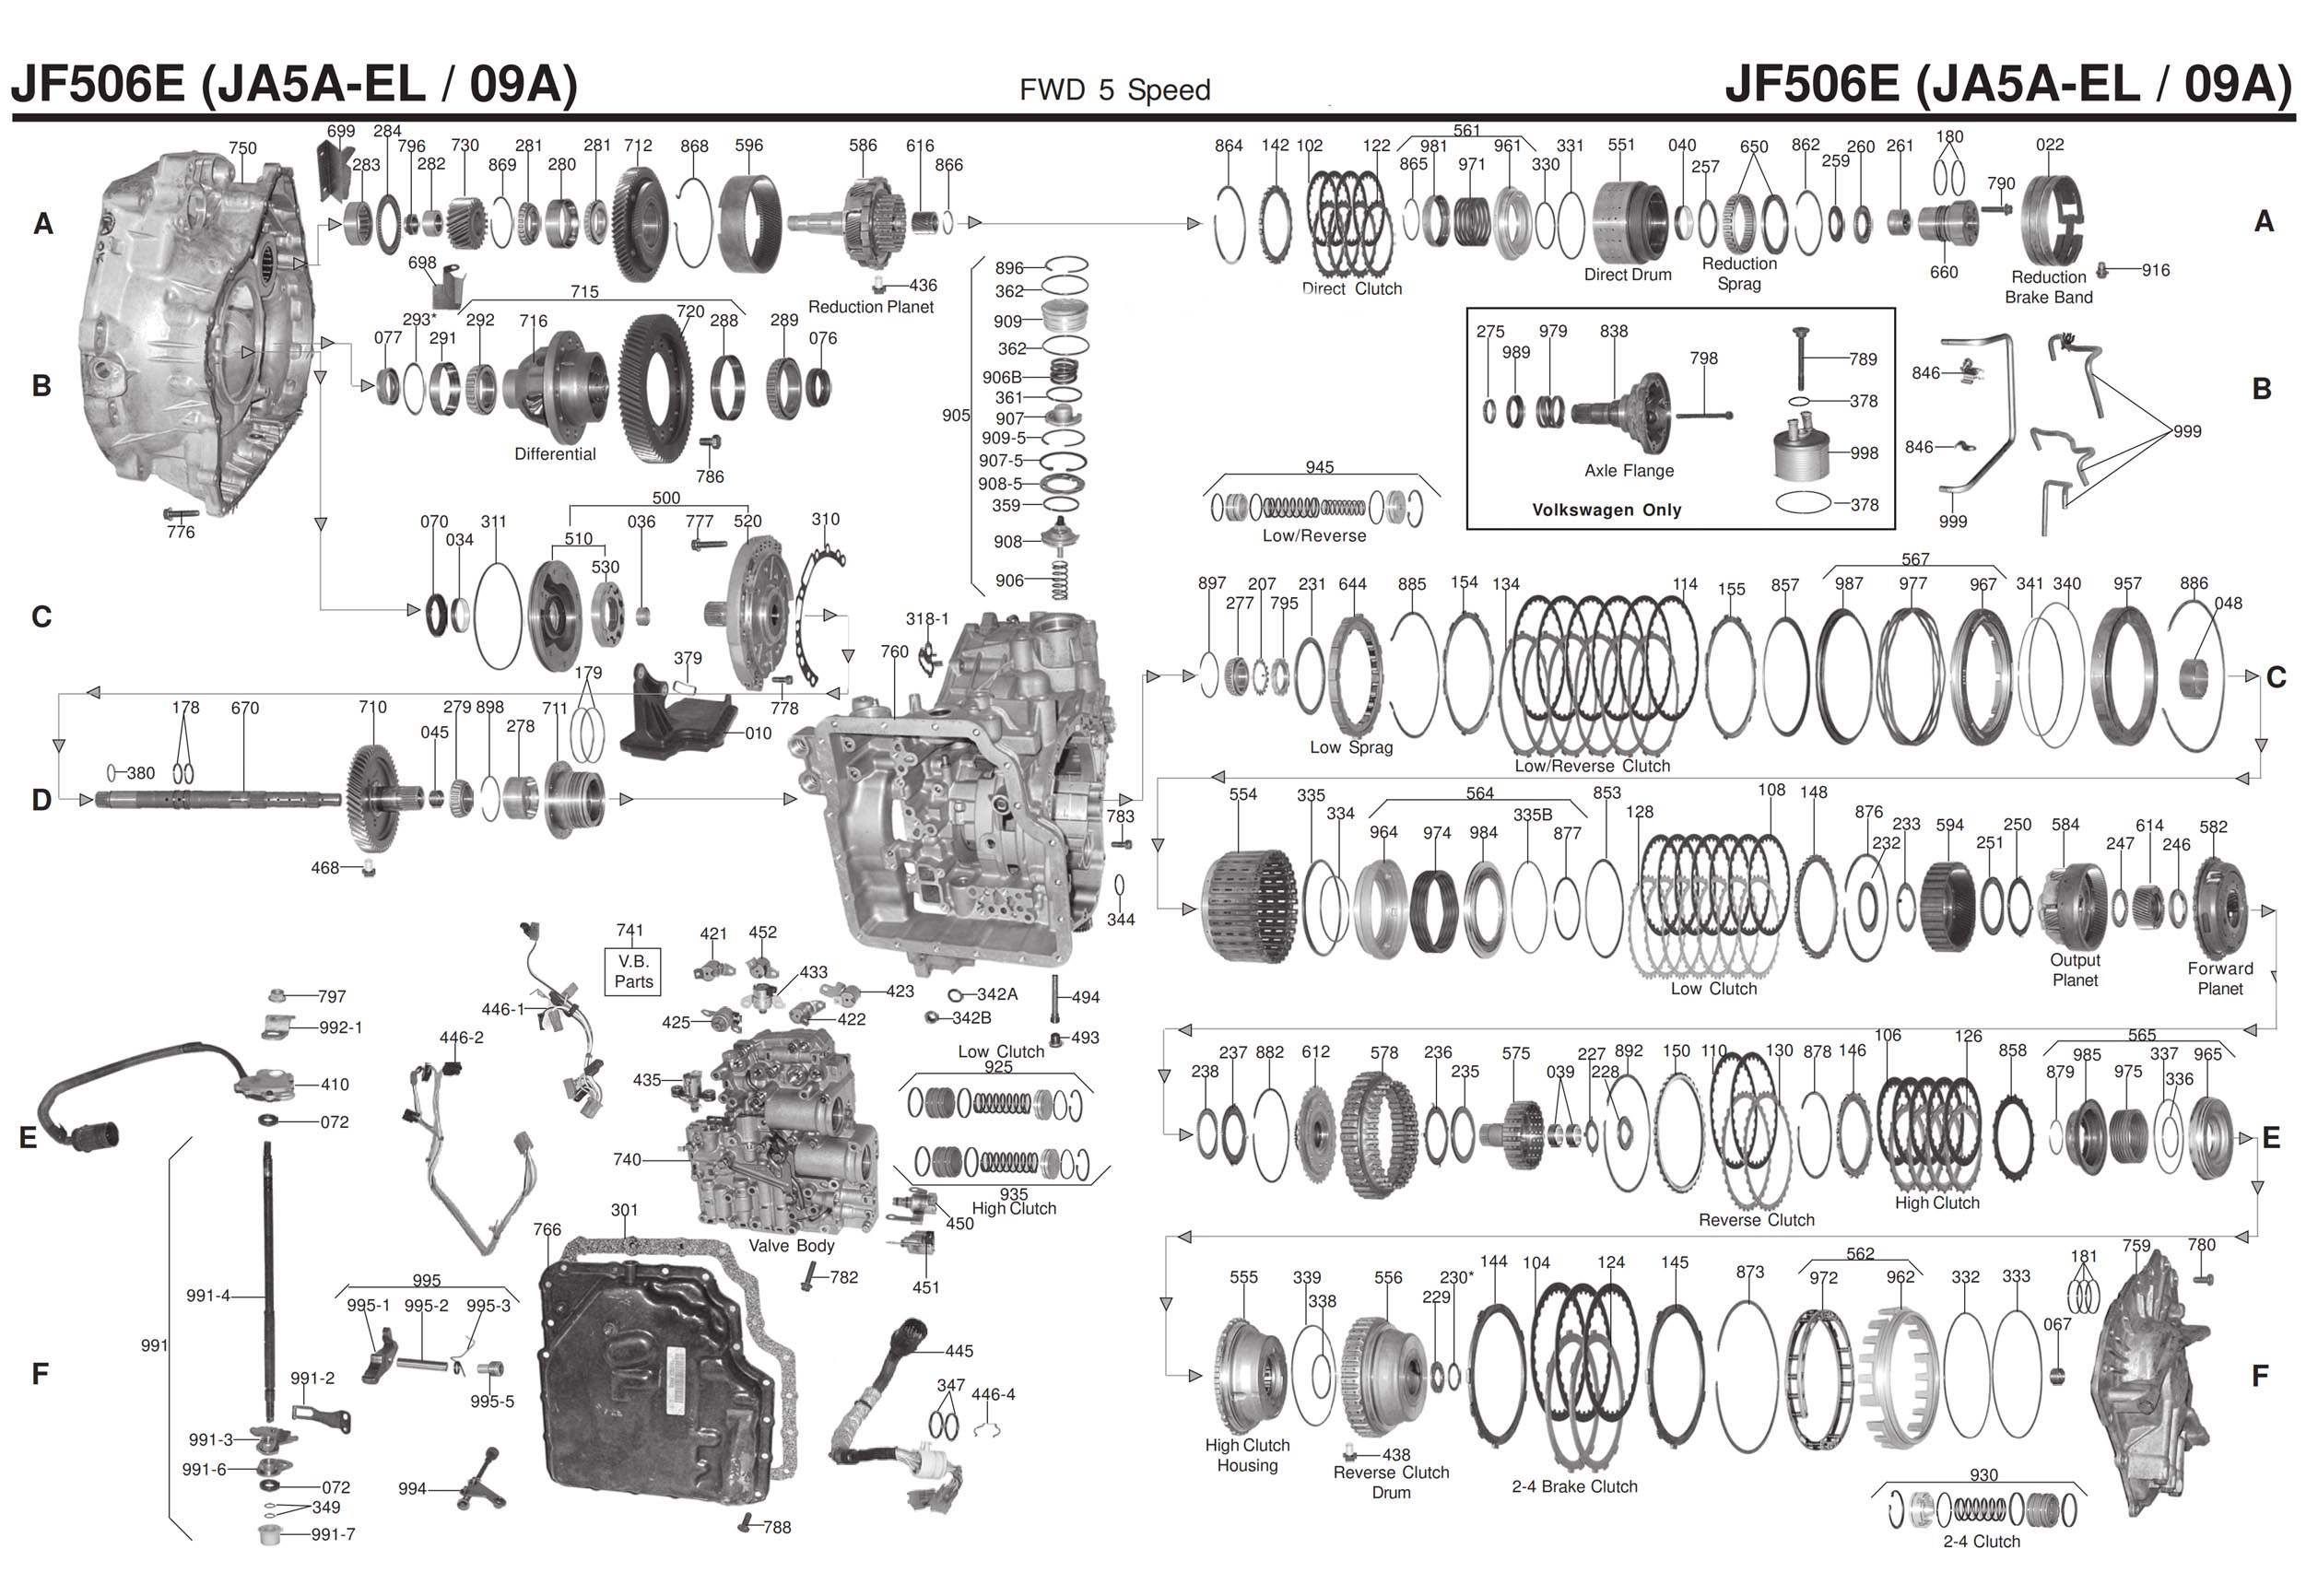 Transmission Repair Manuals 09a Vw  Jf506e  Ja5a